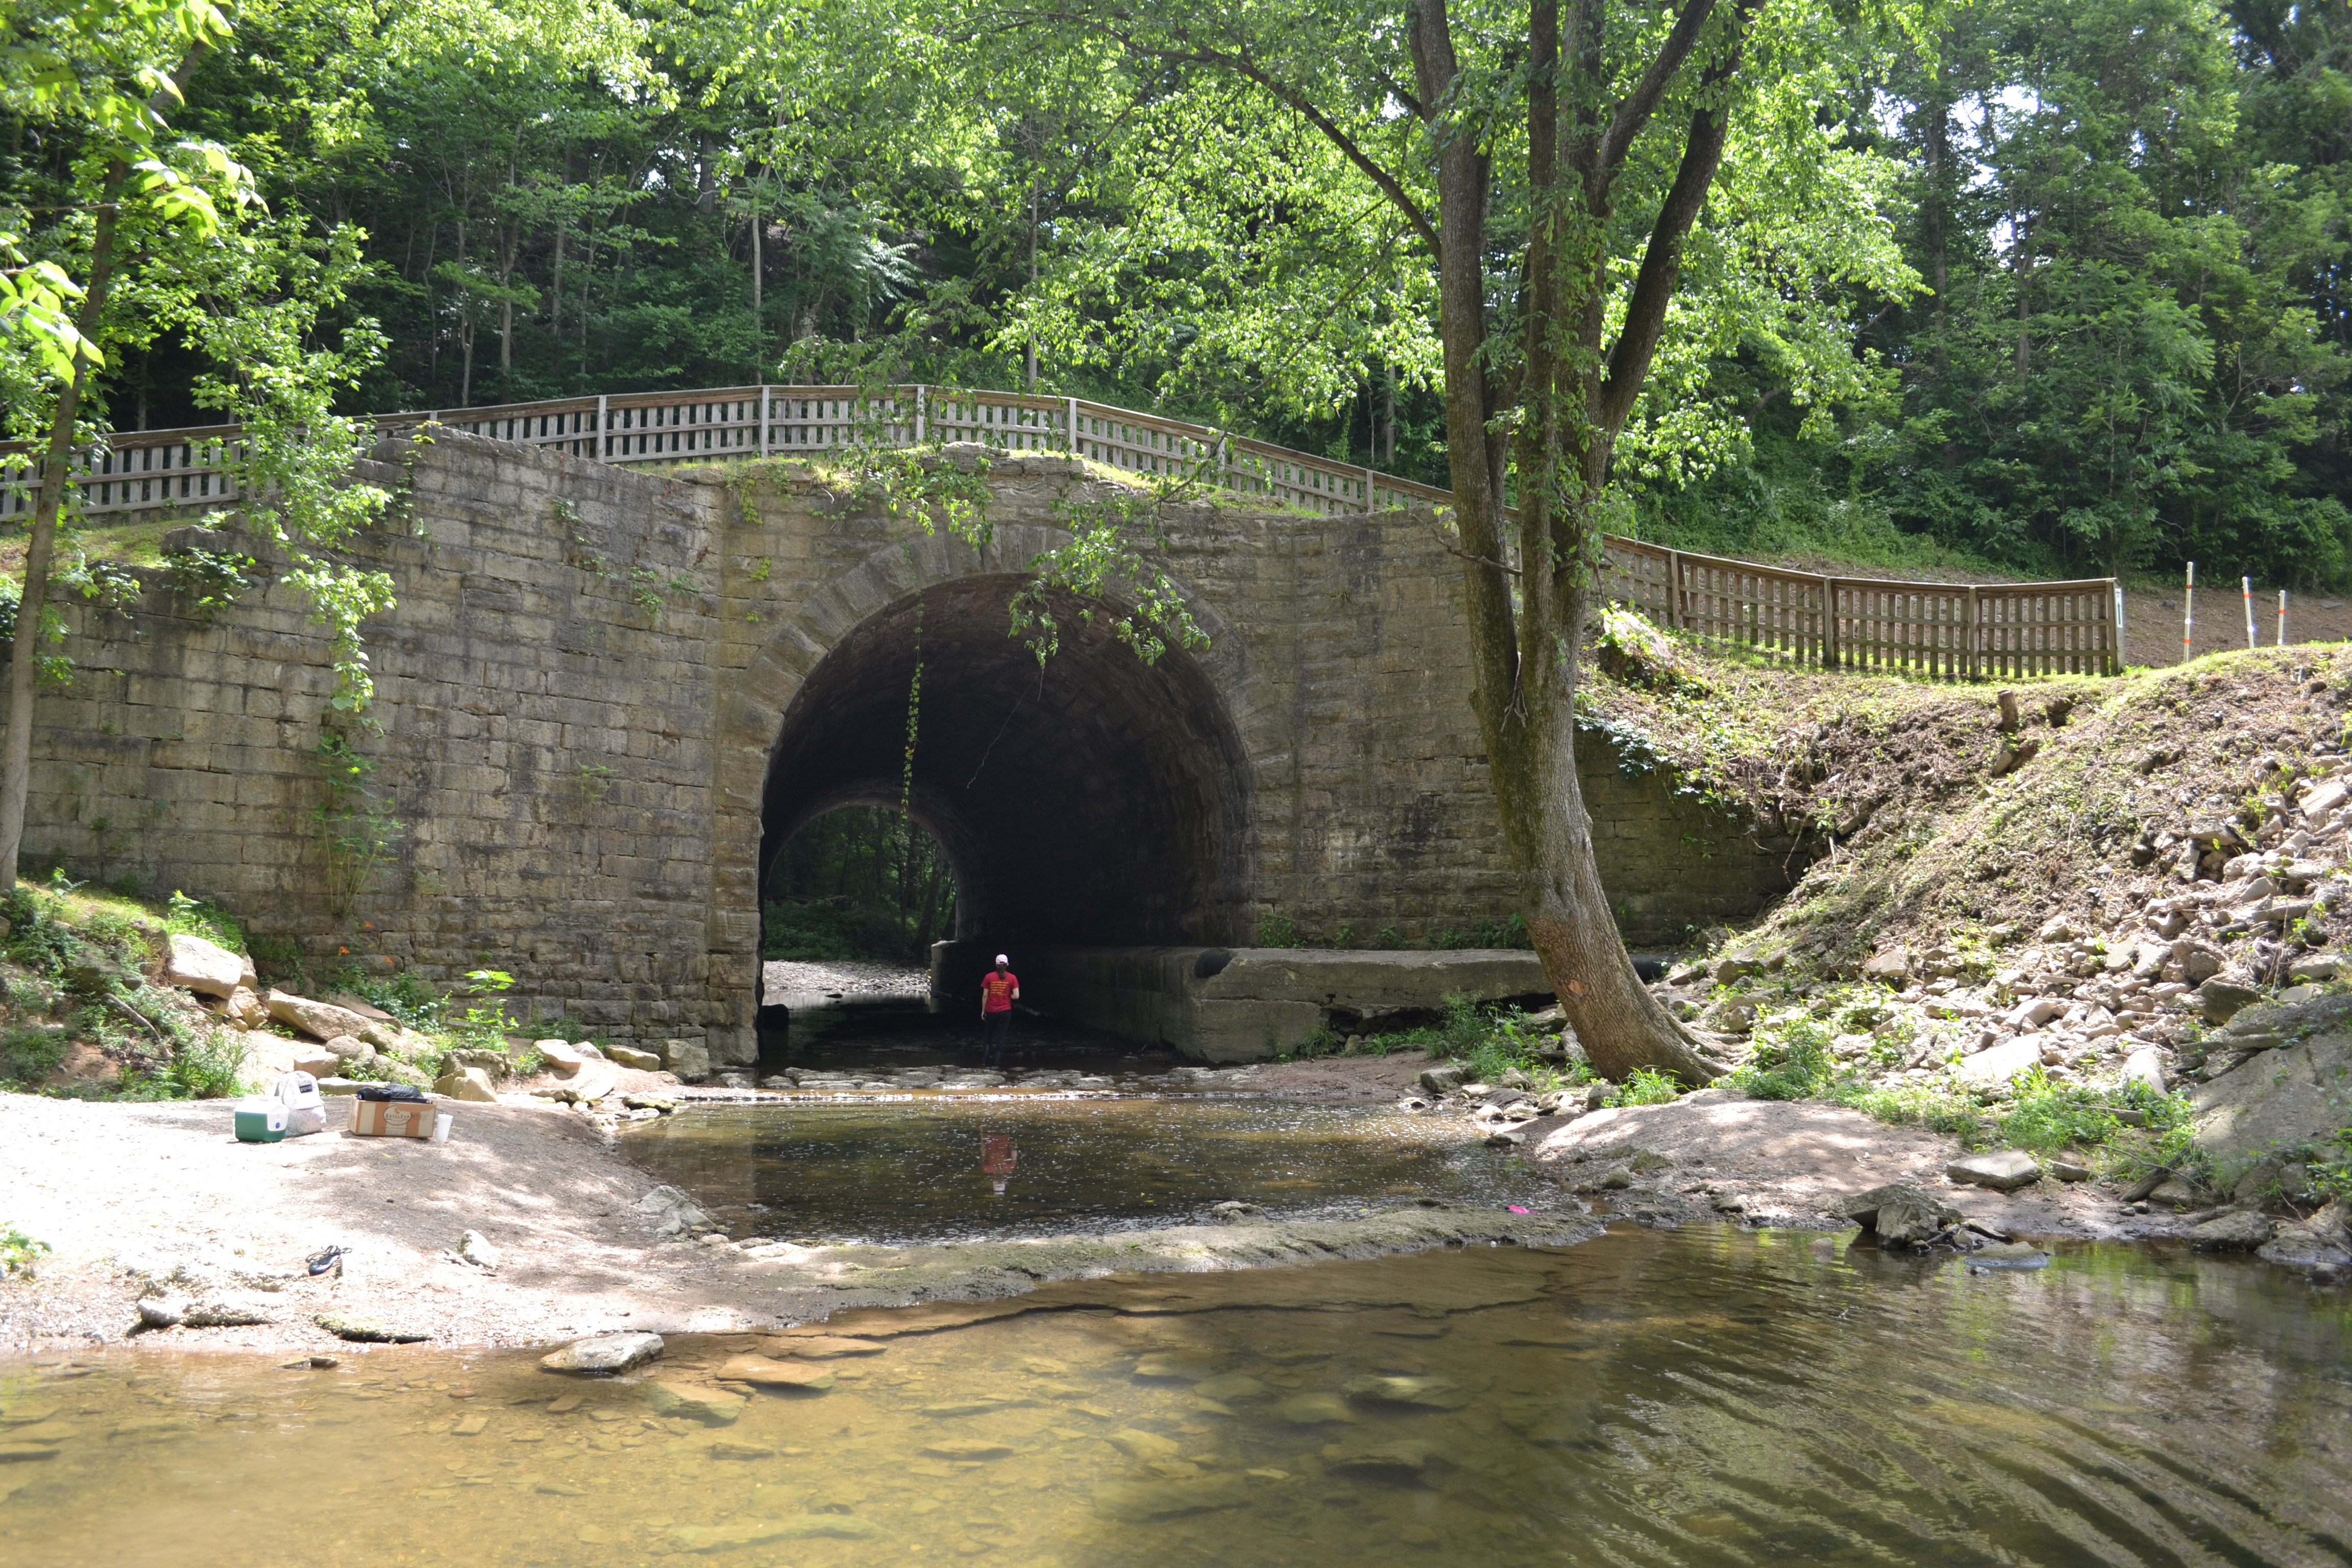 The stone arch culvert over Crooked Creek as it appears today.   The railroad built this culvert in 1863 after the original culvert washed away in 1844.